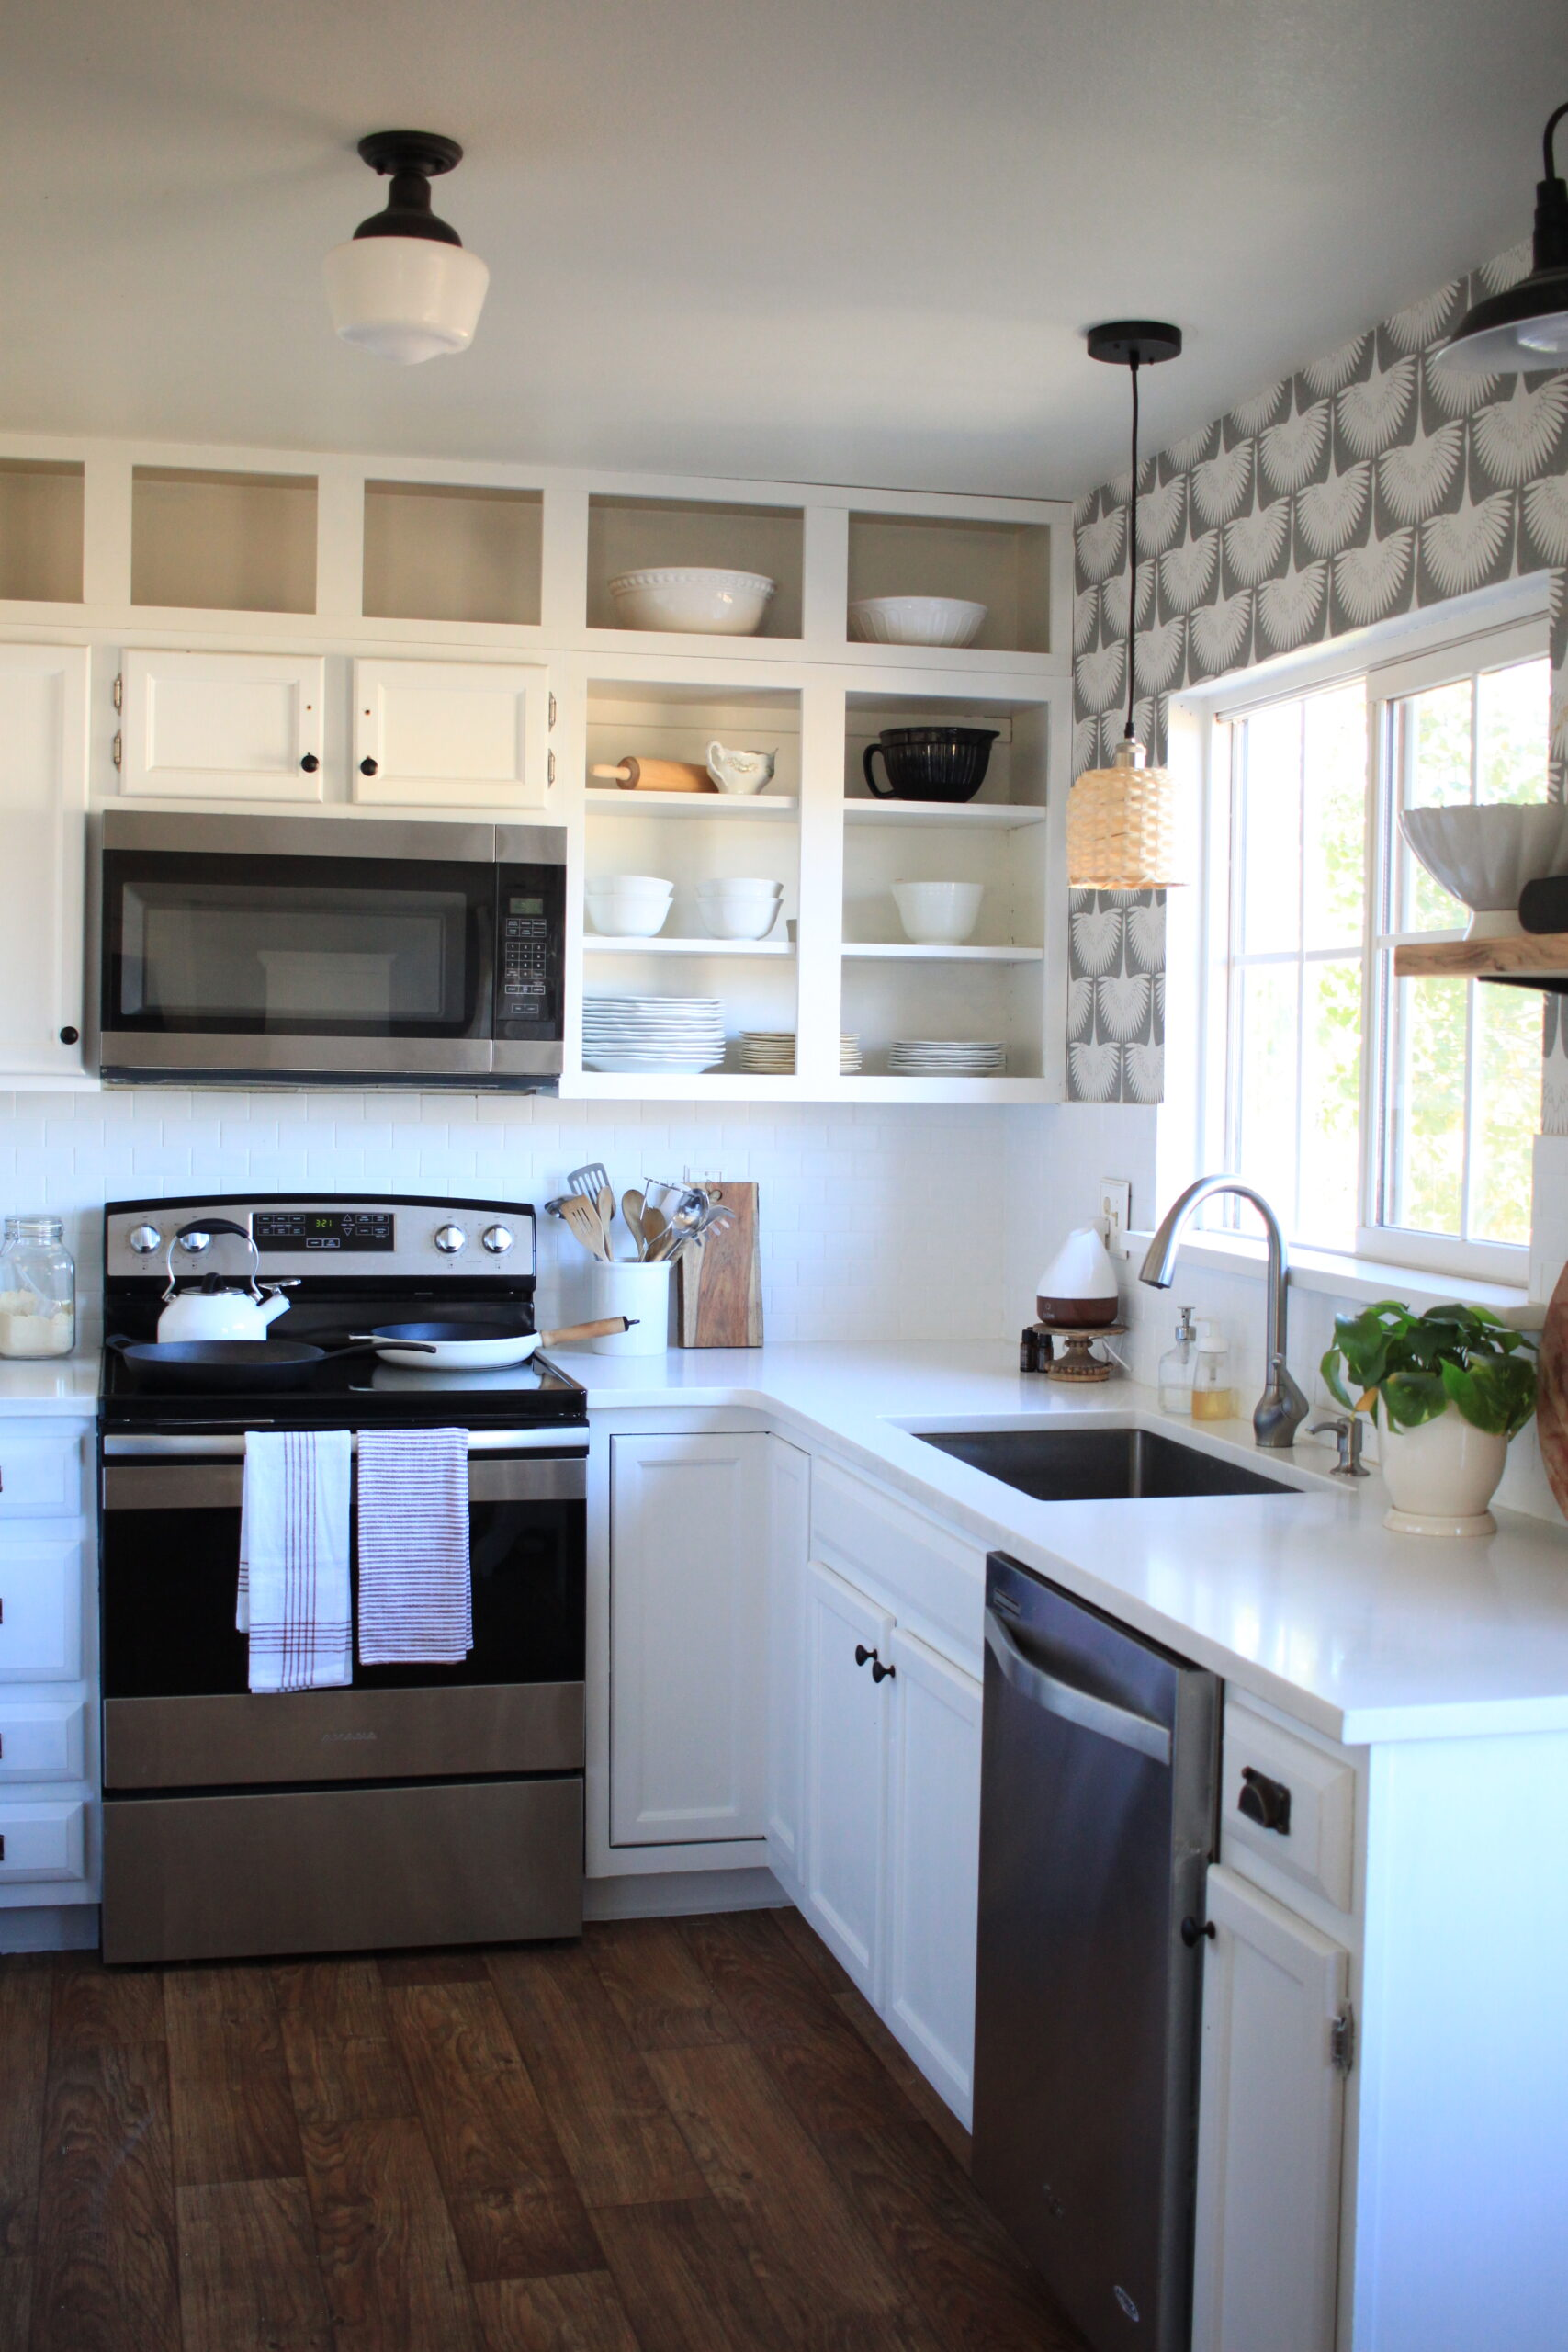 How to Paint your Cabinets without sanding